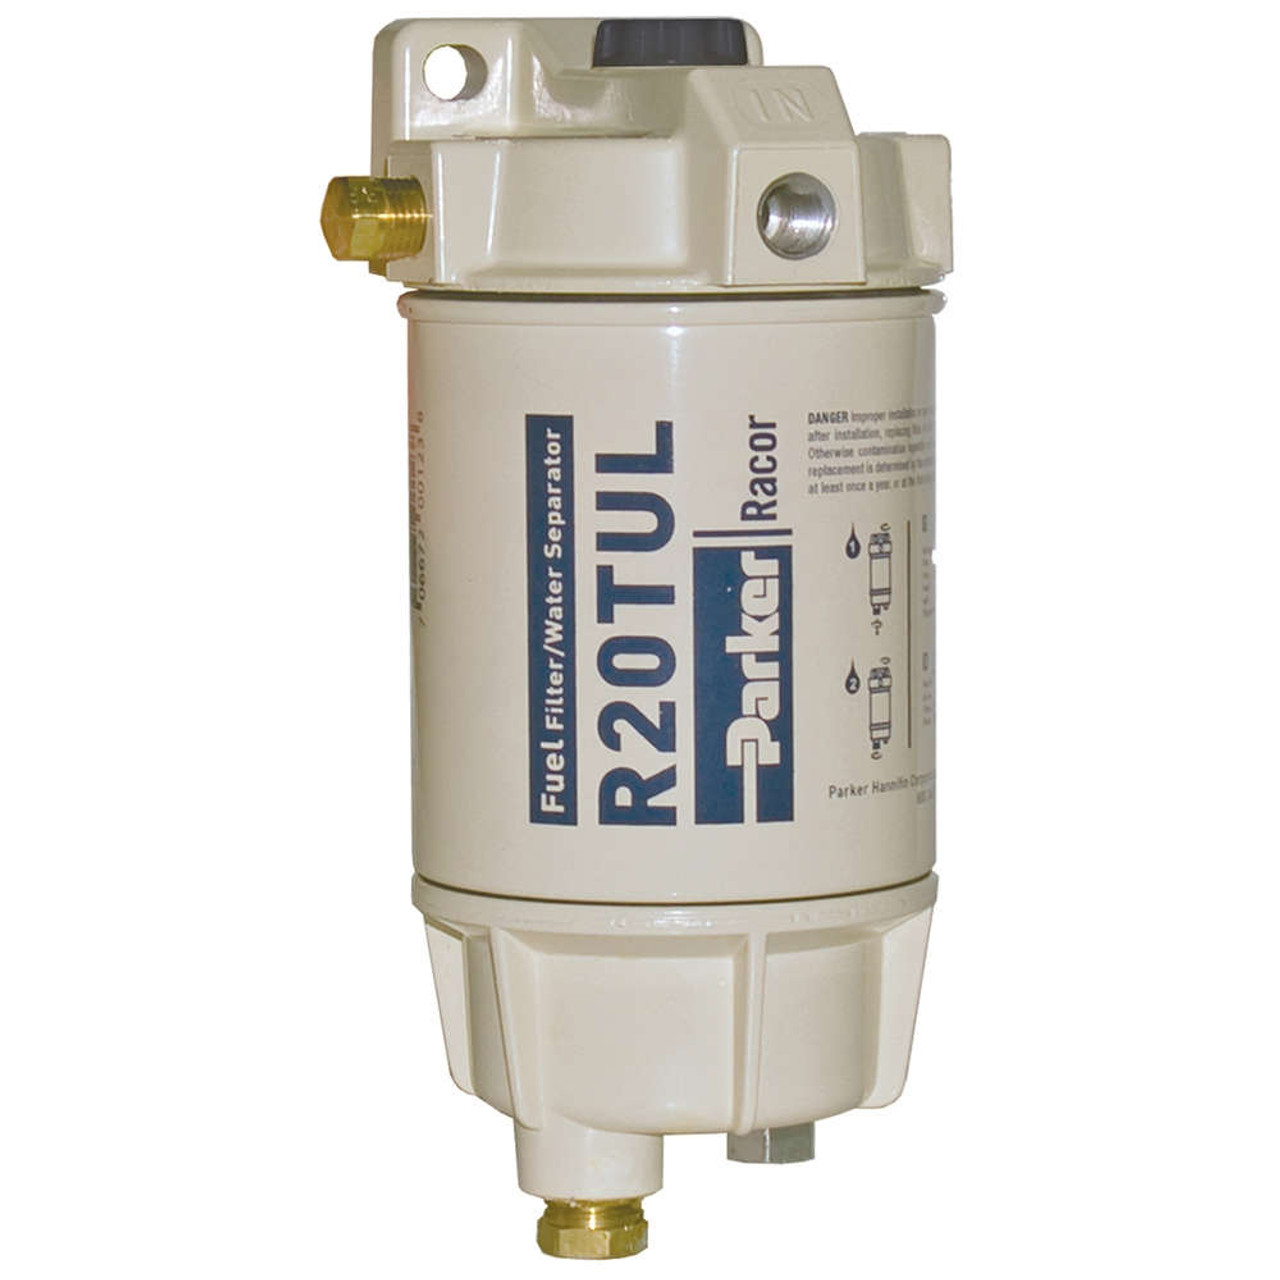 medium resolution of racor 1 4 in 30 gph aquabloc marine spin on type diesel fuel filter water separator assembly 6 qty john m ellsworth co inc